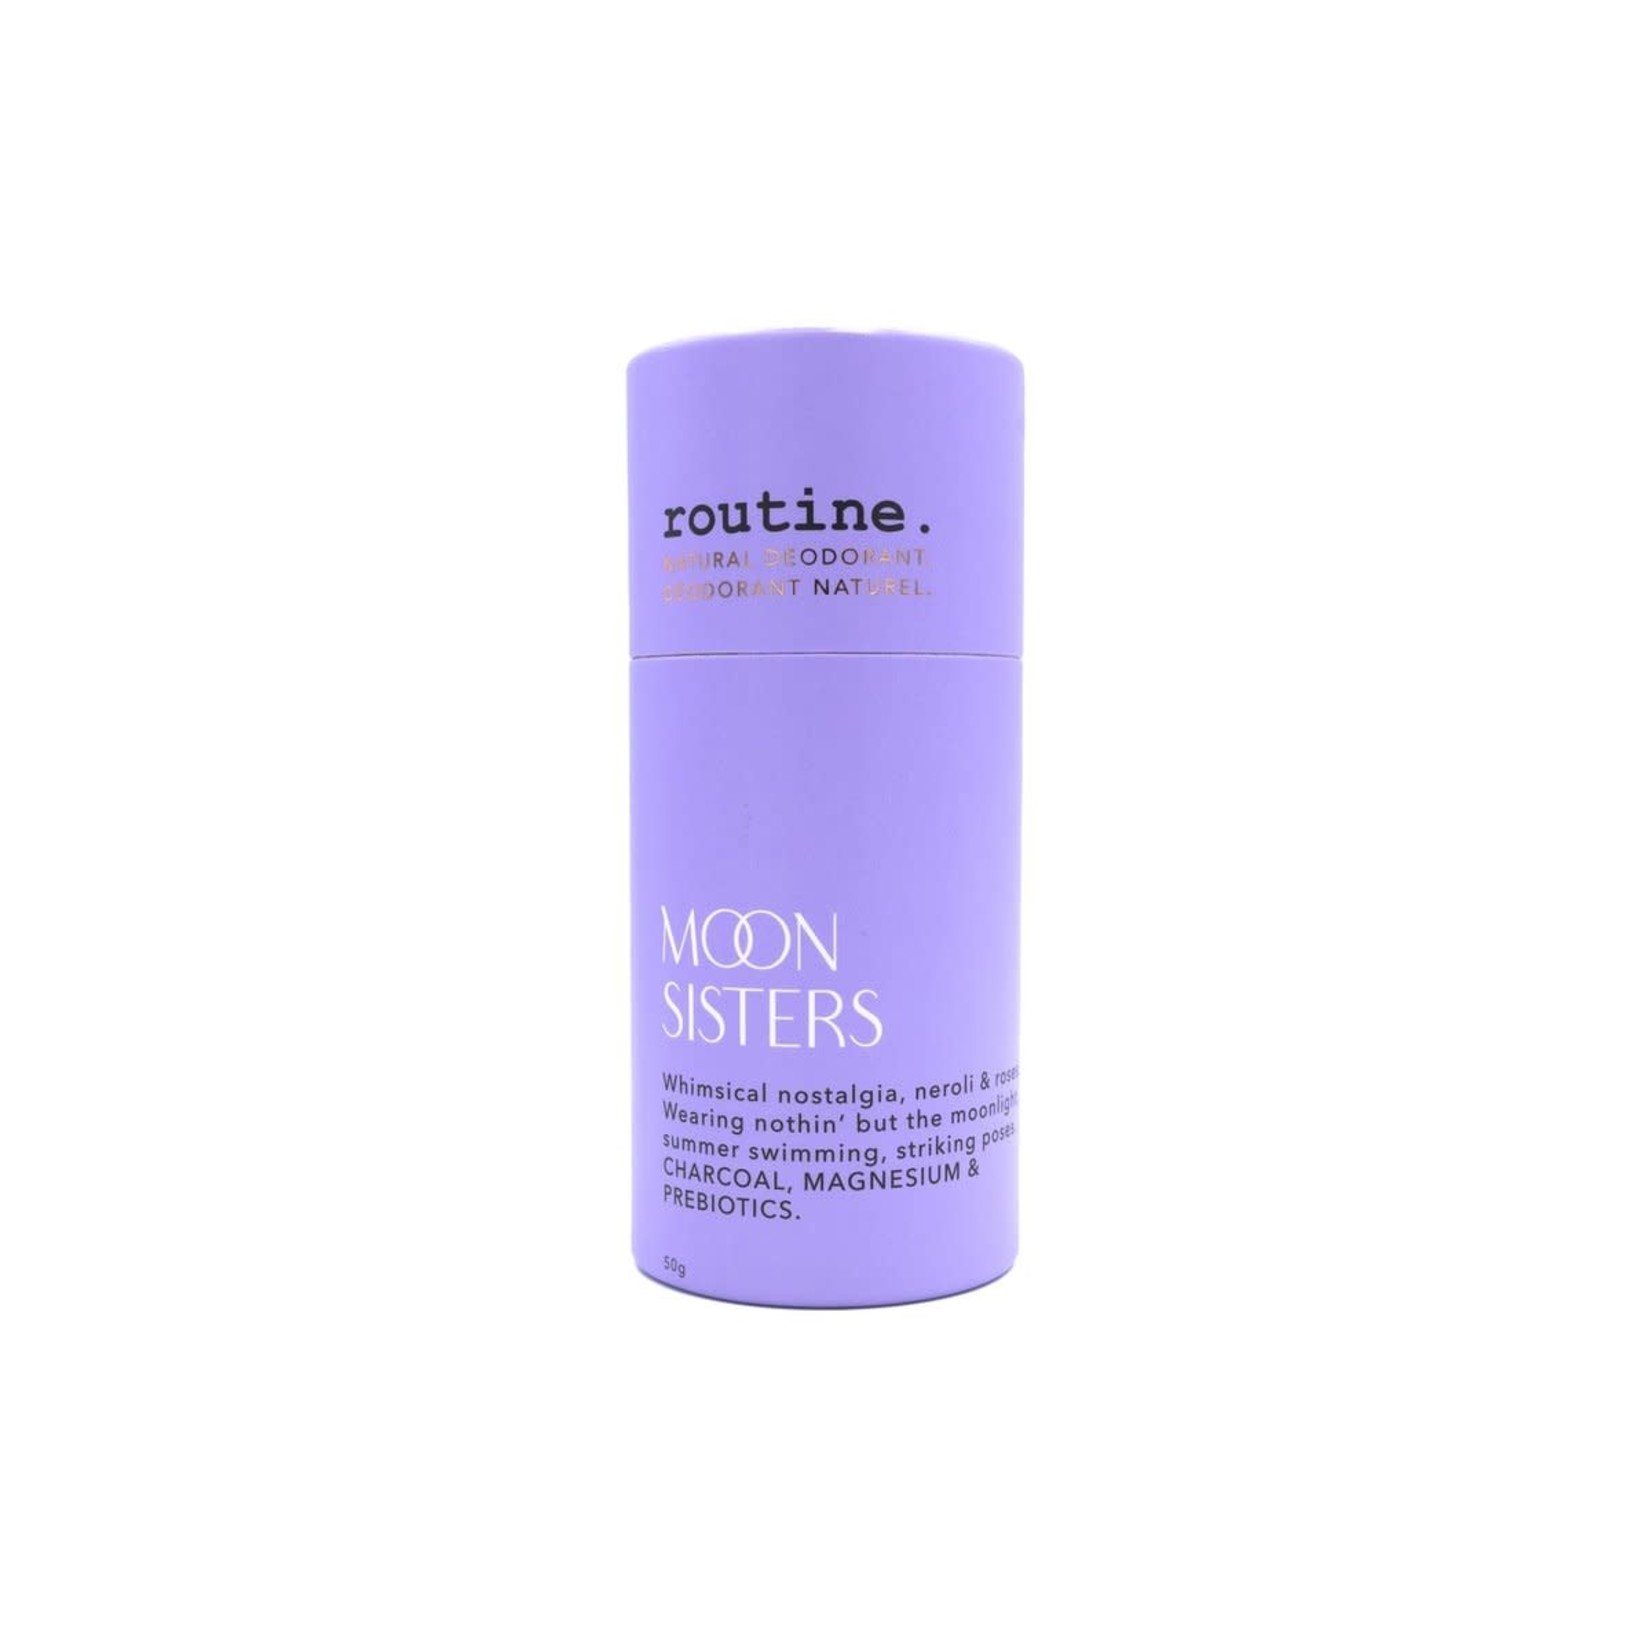 ROUTINE MOON SISTERS STICK